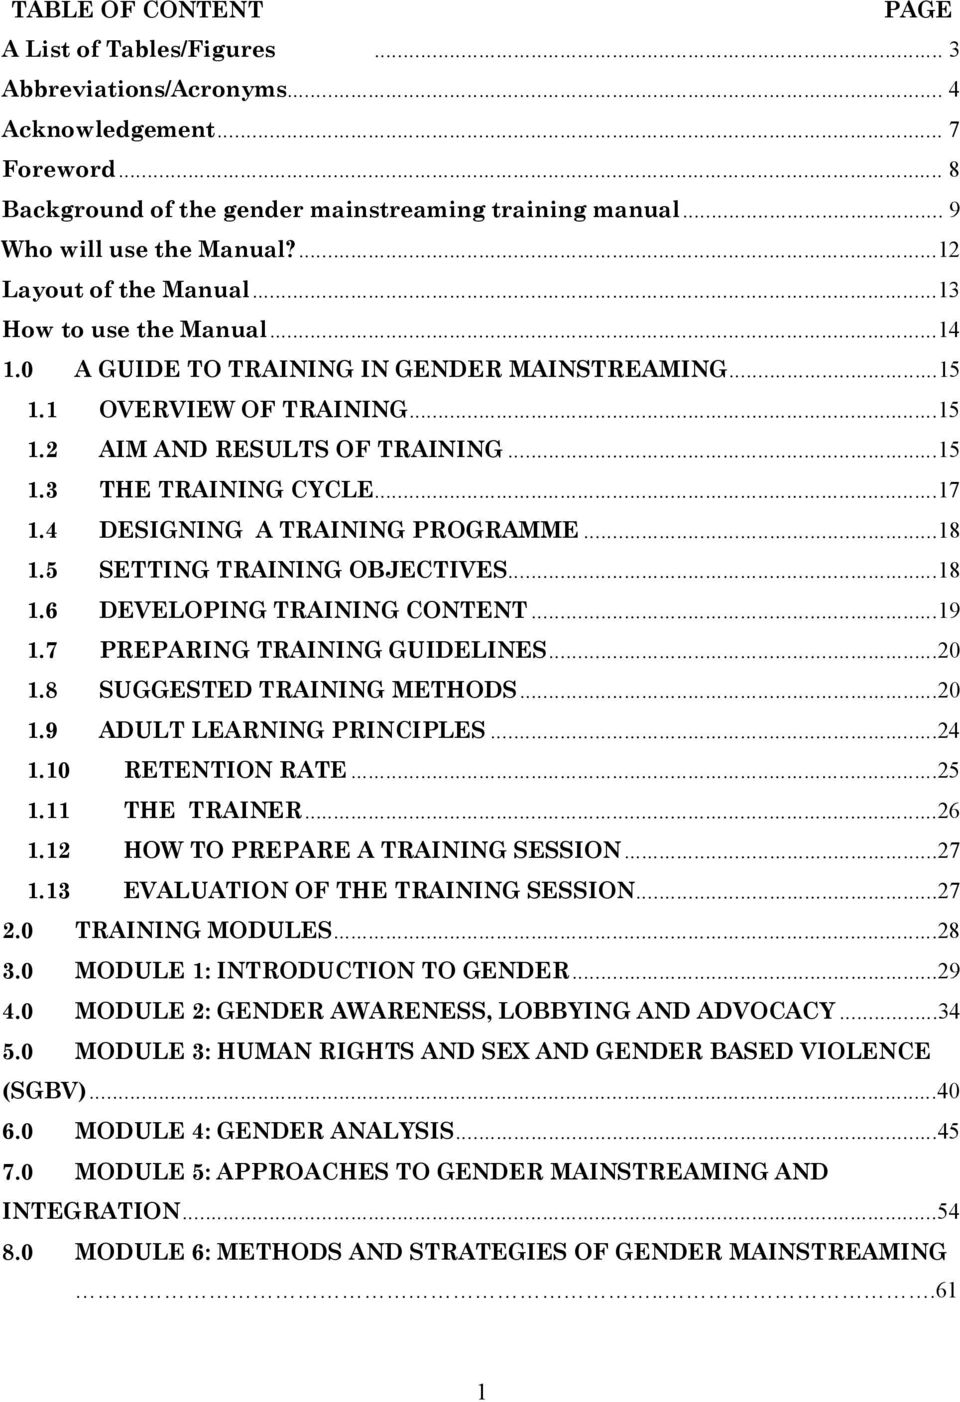 ..17 1.4 DESIGNING A TRAINING PROGRAMME...18 1.5 SETTING TRAINING OBJECTIVES...18 1.6 DEVELOPING TRAINING CONTENT...19 1.7 PREPARING TRAINING GUIDELINES...20 1.8 SUGGESTED TRAINING METHODS...20 1.9 ADULT LEARNING PRINCIPLES.